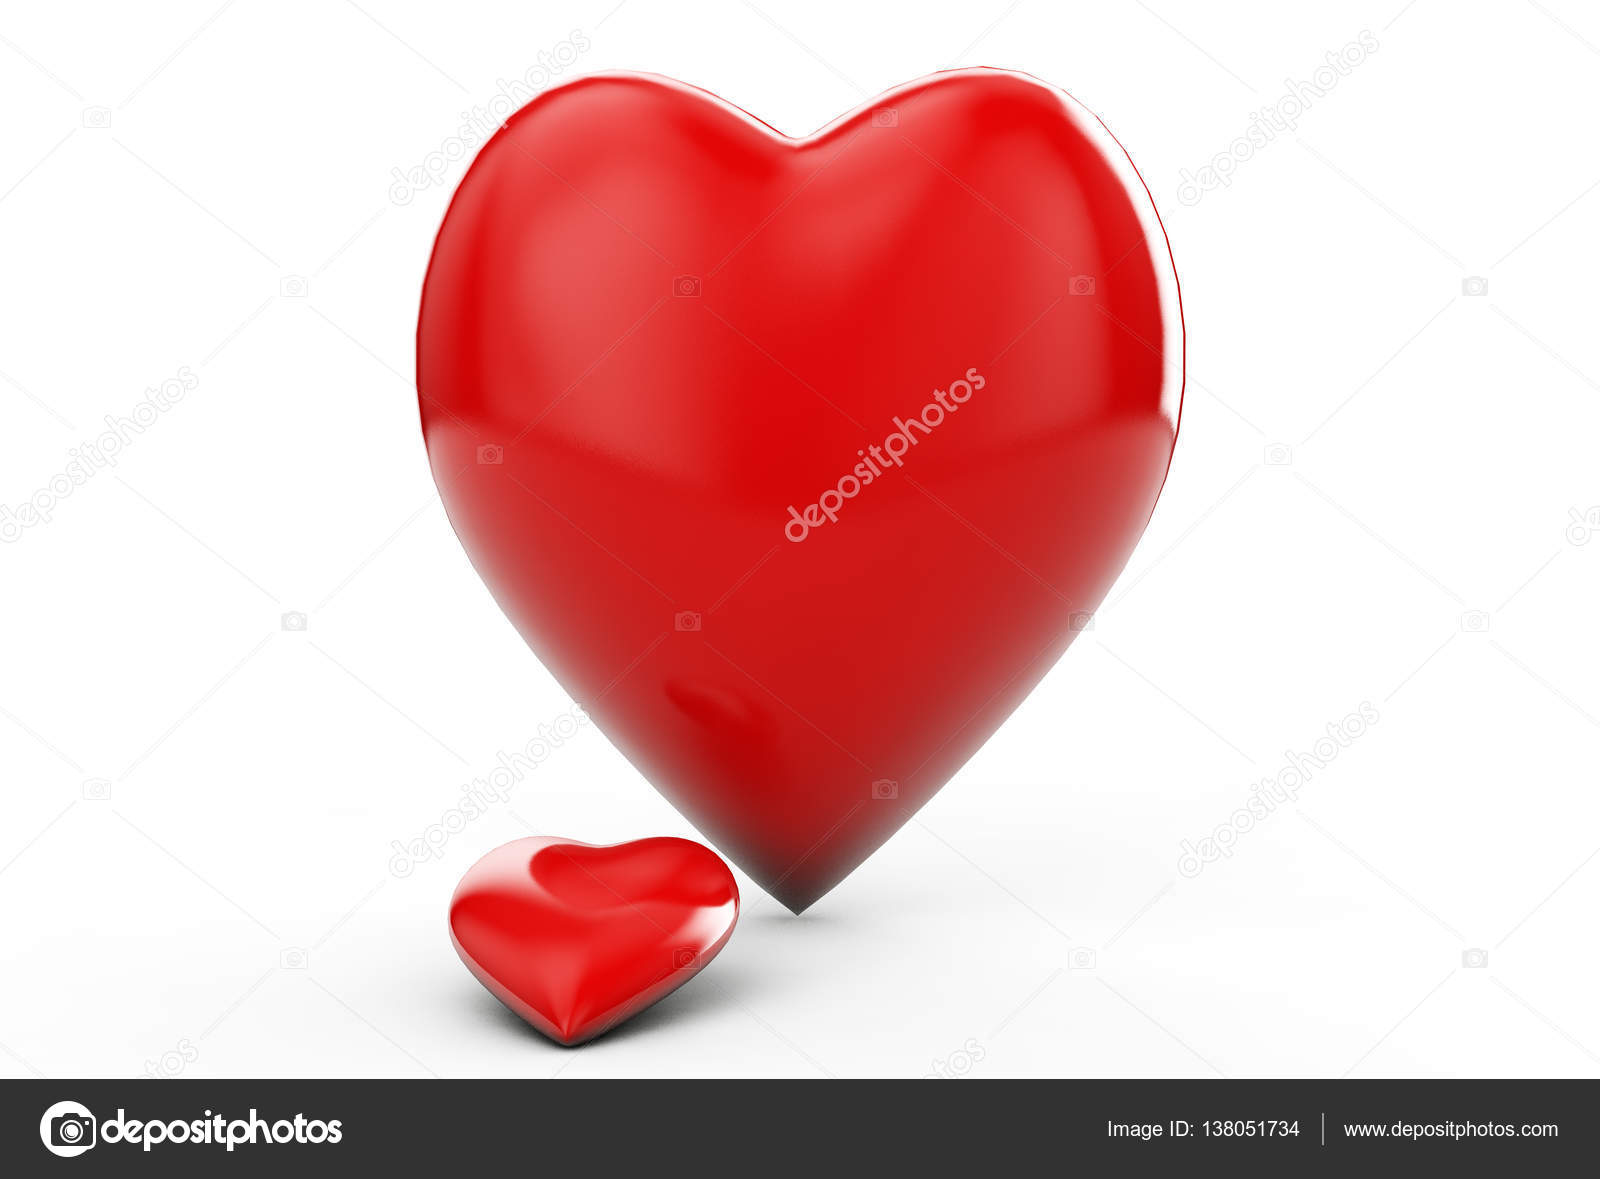 Two Heart Symbol Image collections - Symbol and Sign Ideas